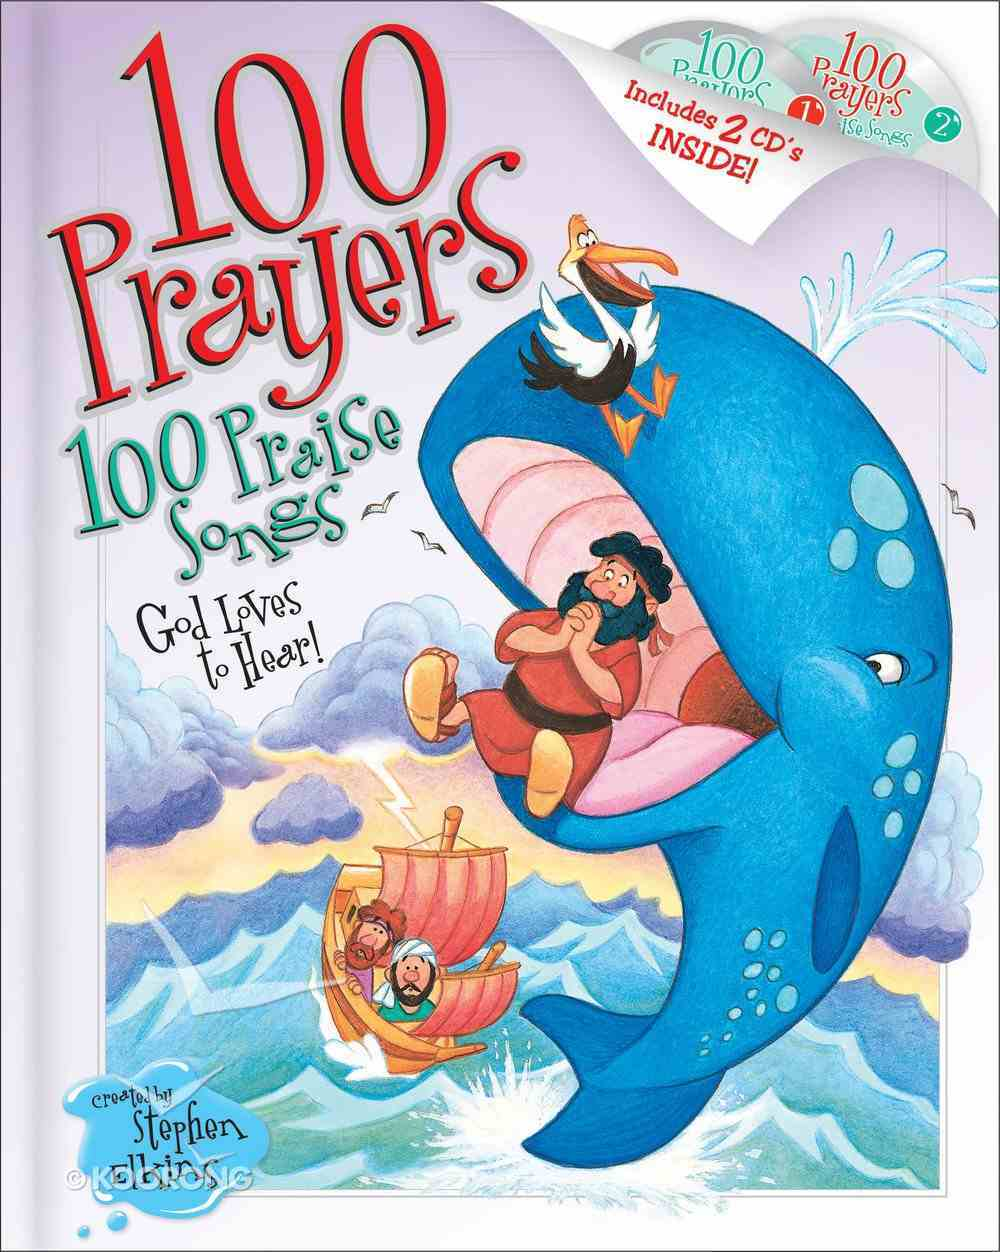 100 Prayers God Loves to Hear, 100 Praise Songs (101 Questions About The Bible Kingstone Comics Series) eBook